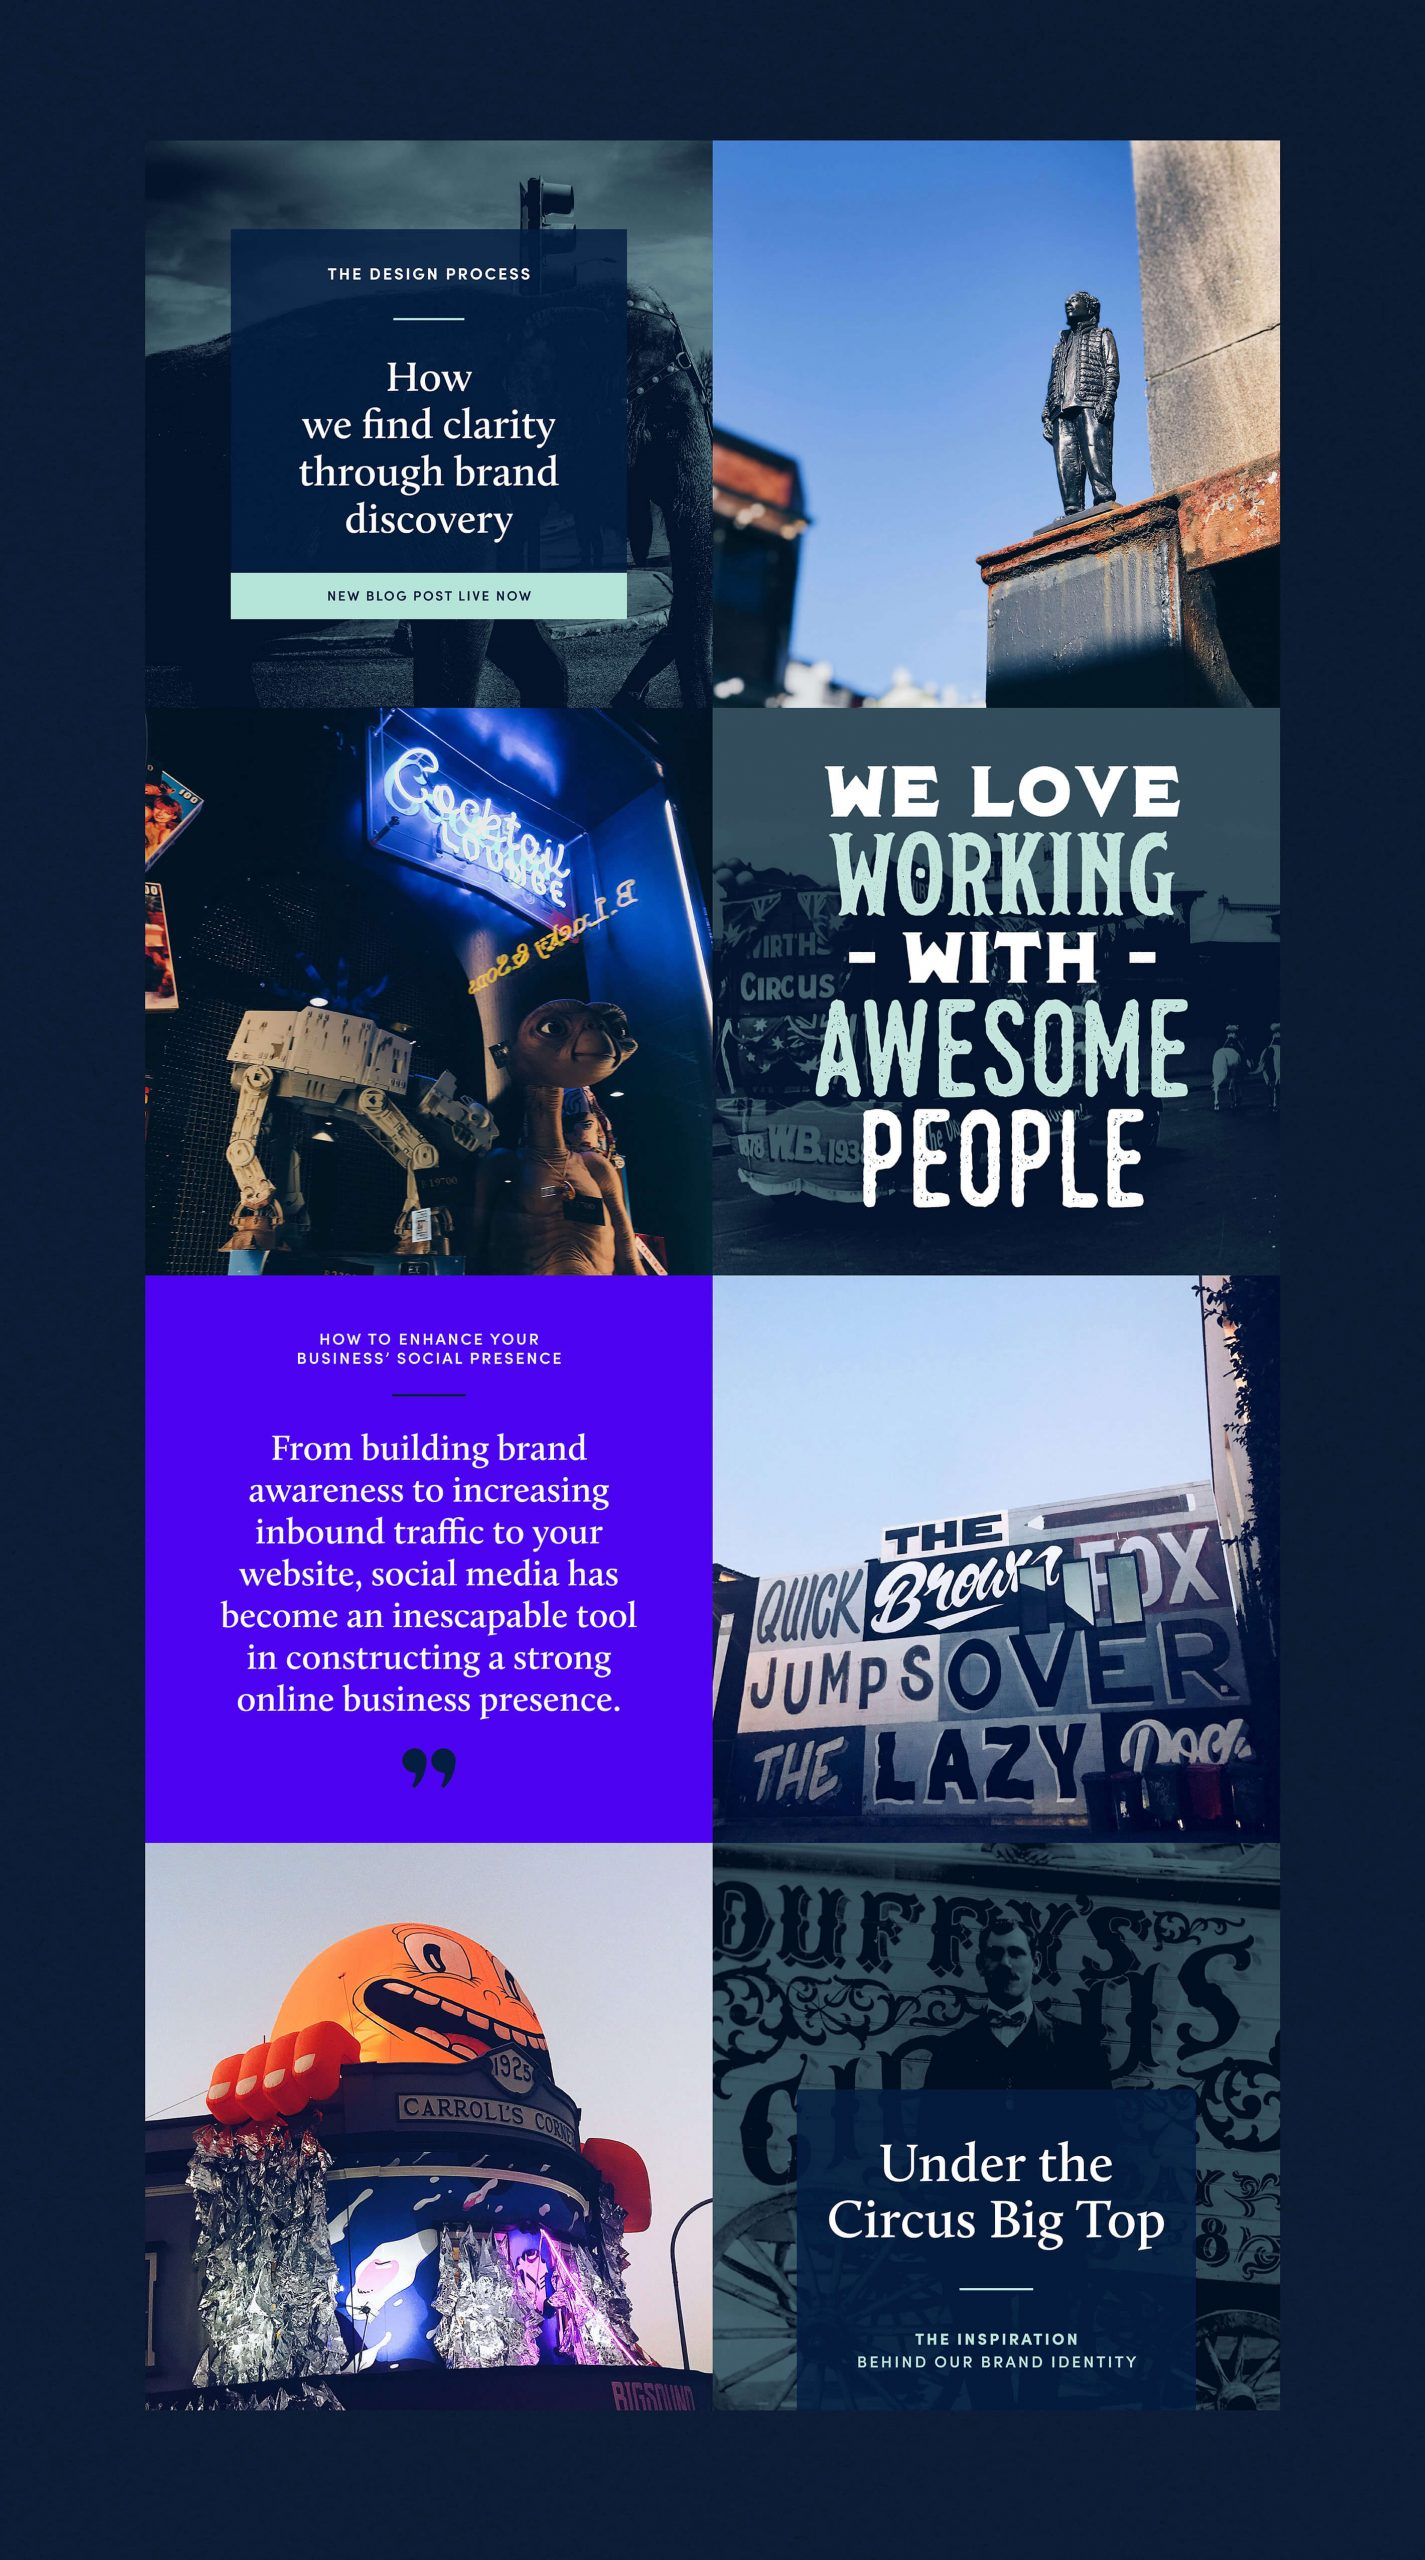 strong digital overview featuring photography of brisbane and custom designed graphics